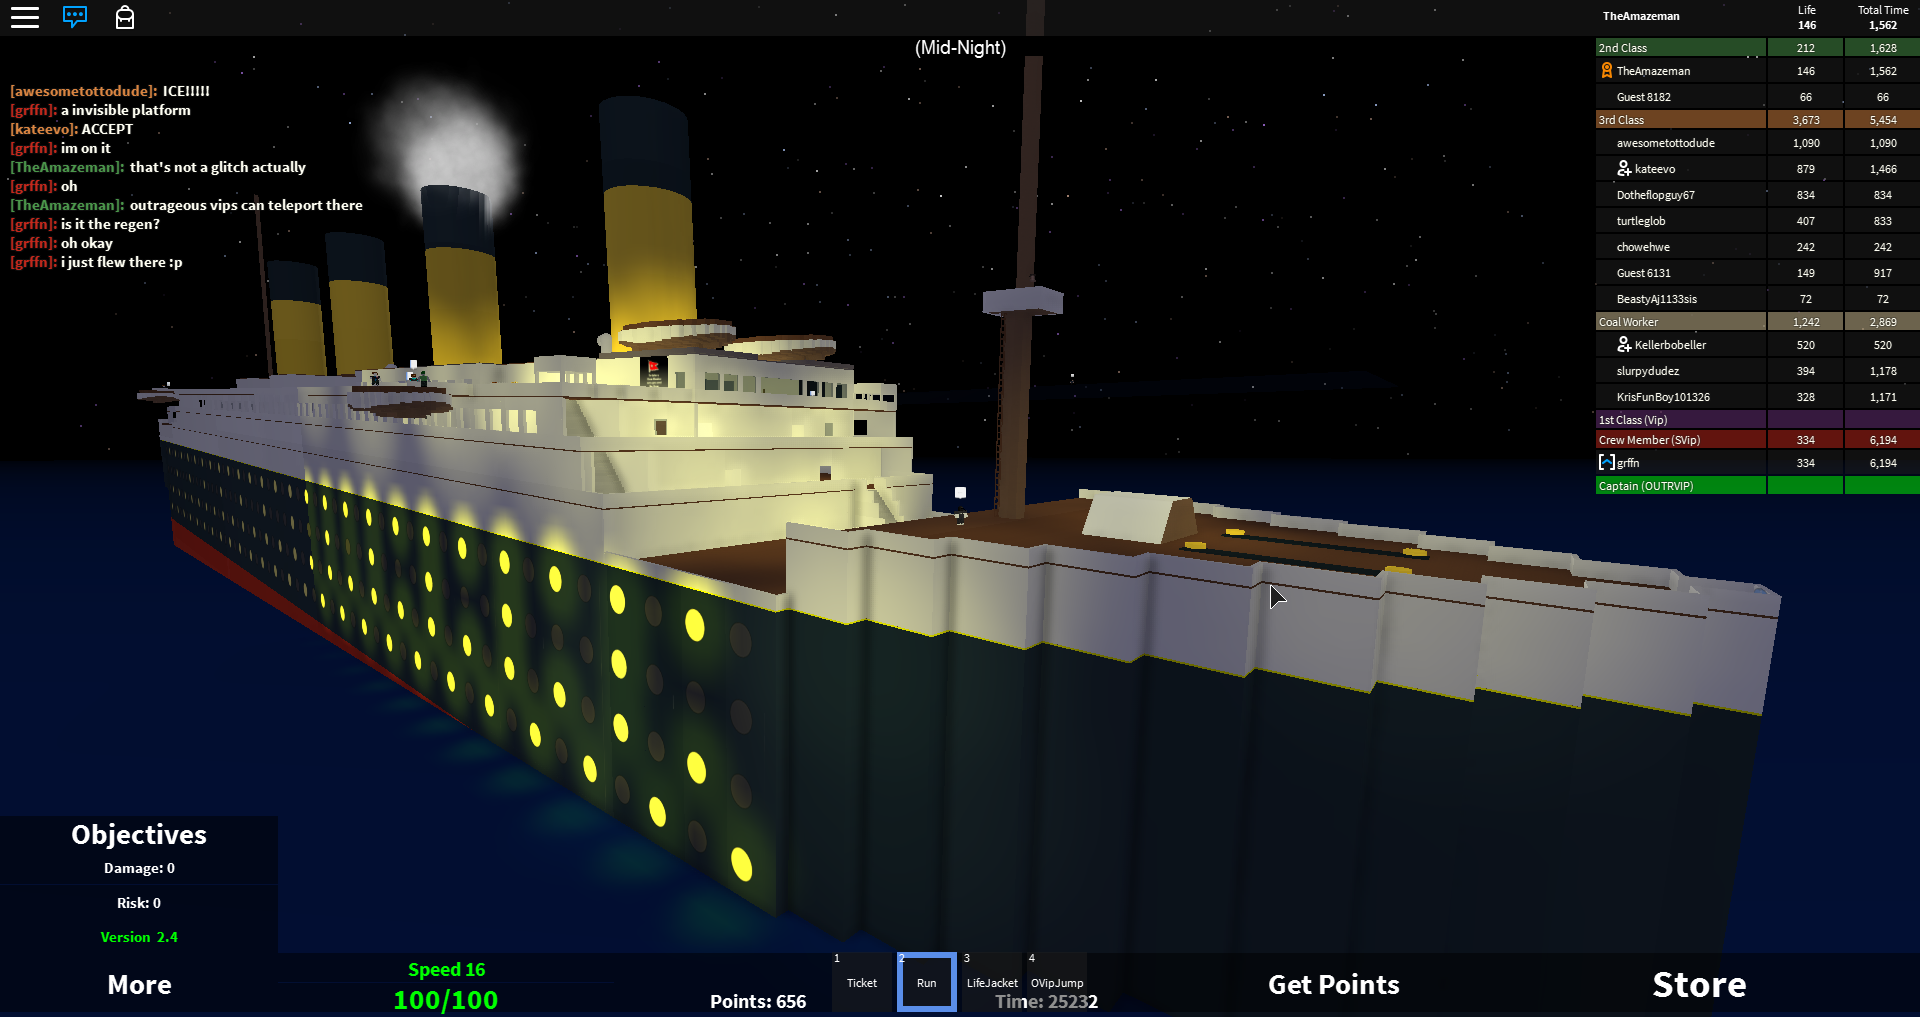 Amaze On Twitter Top Bar Works Pretty Well For Roblox Titanic